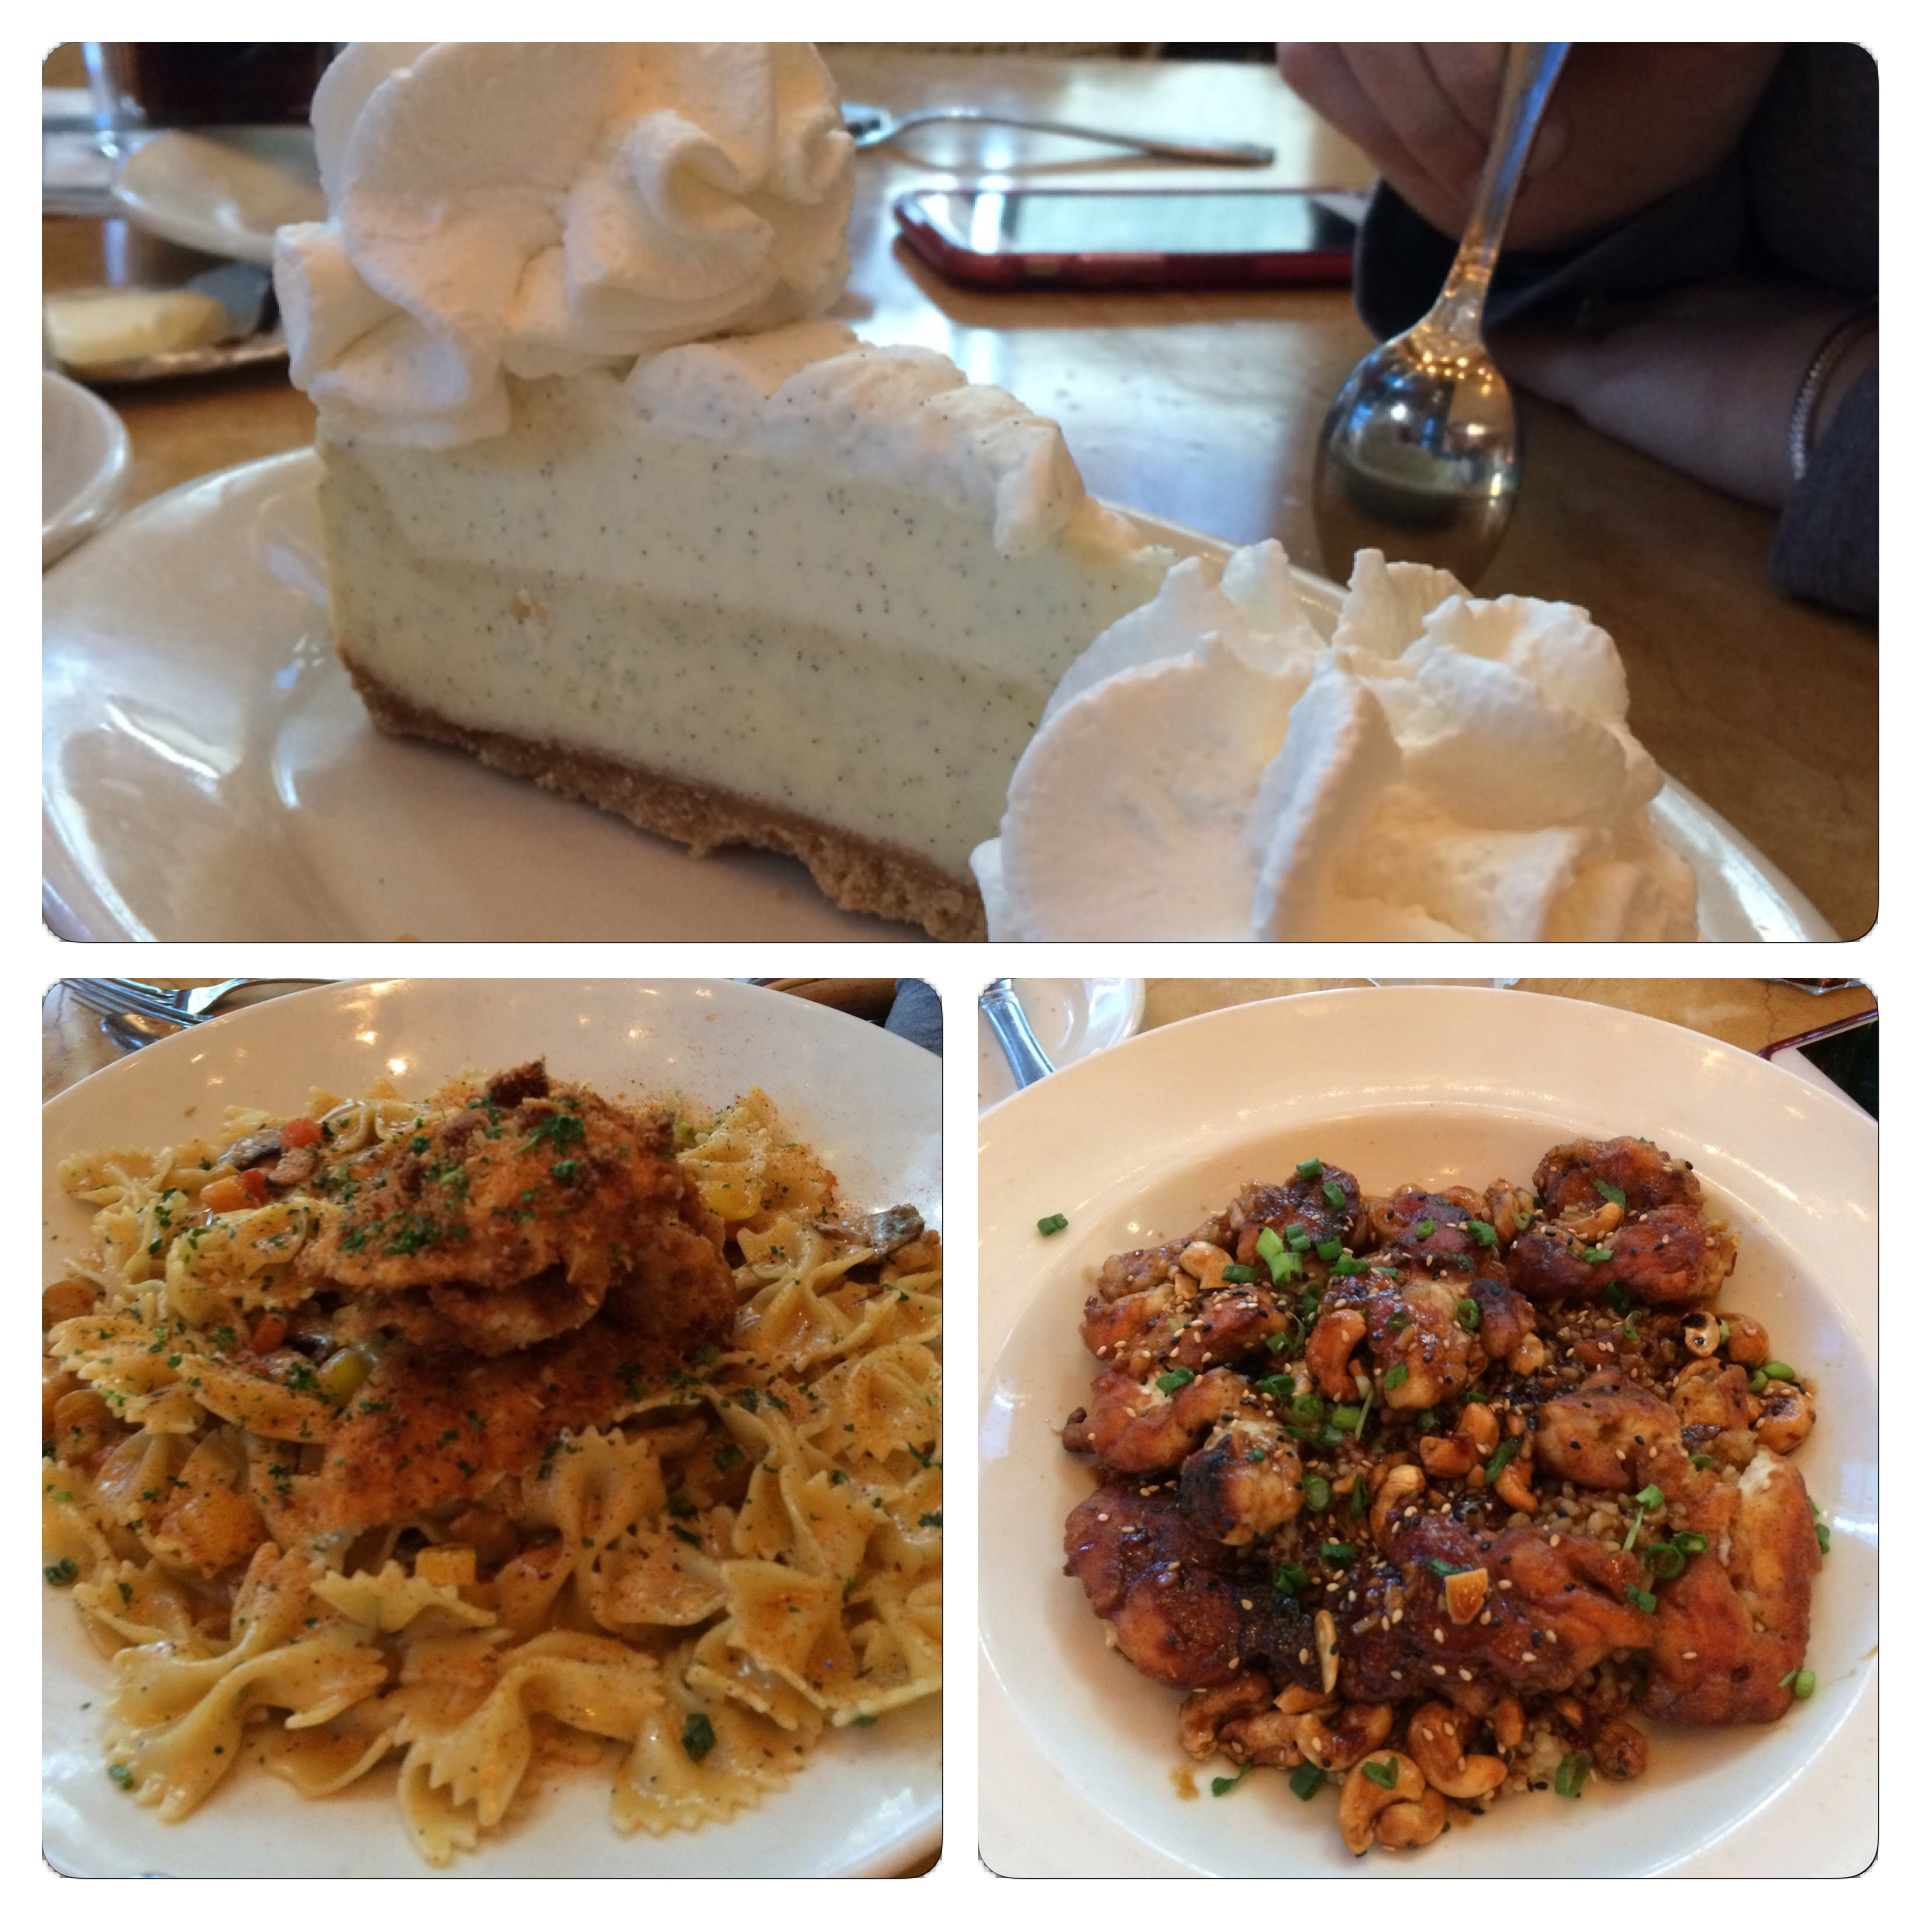 A look at the food we ordered yesterday at the Charlotte Cheesecake Factory. So good.